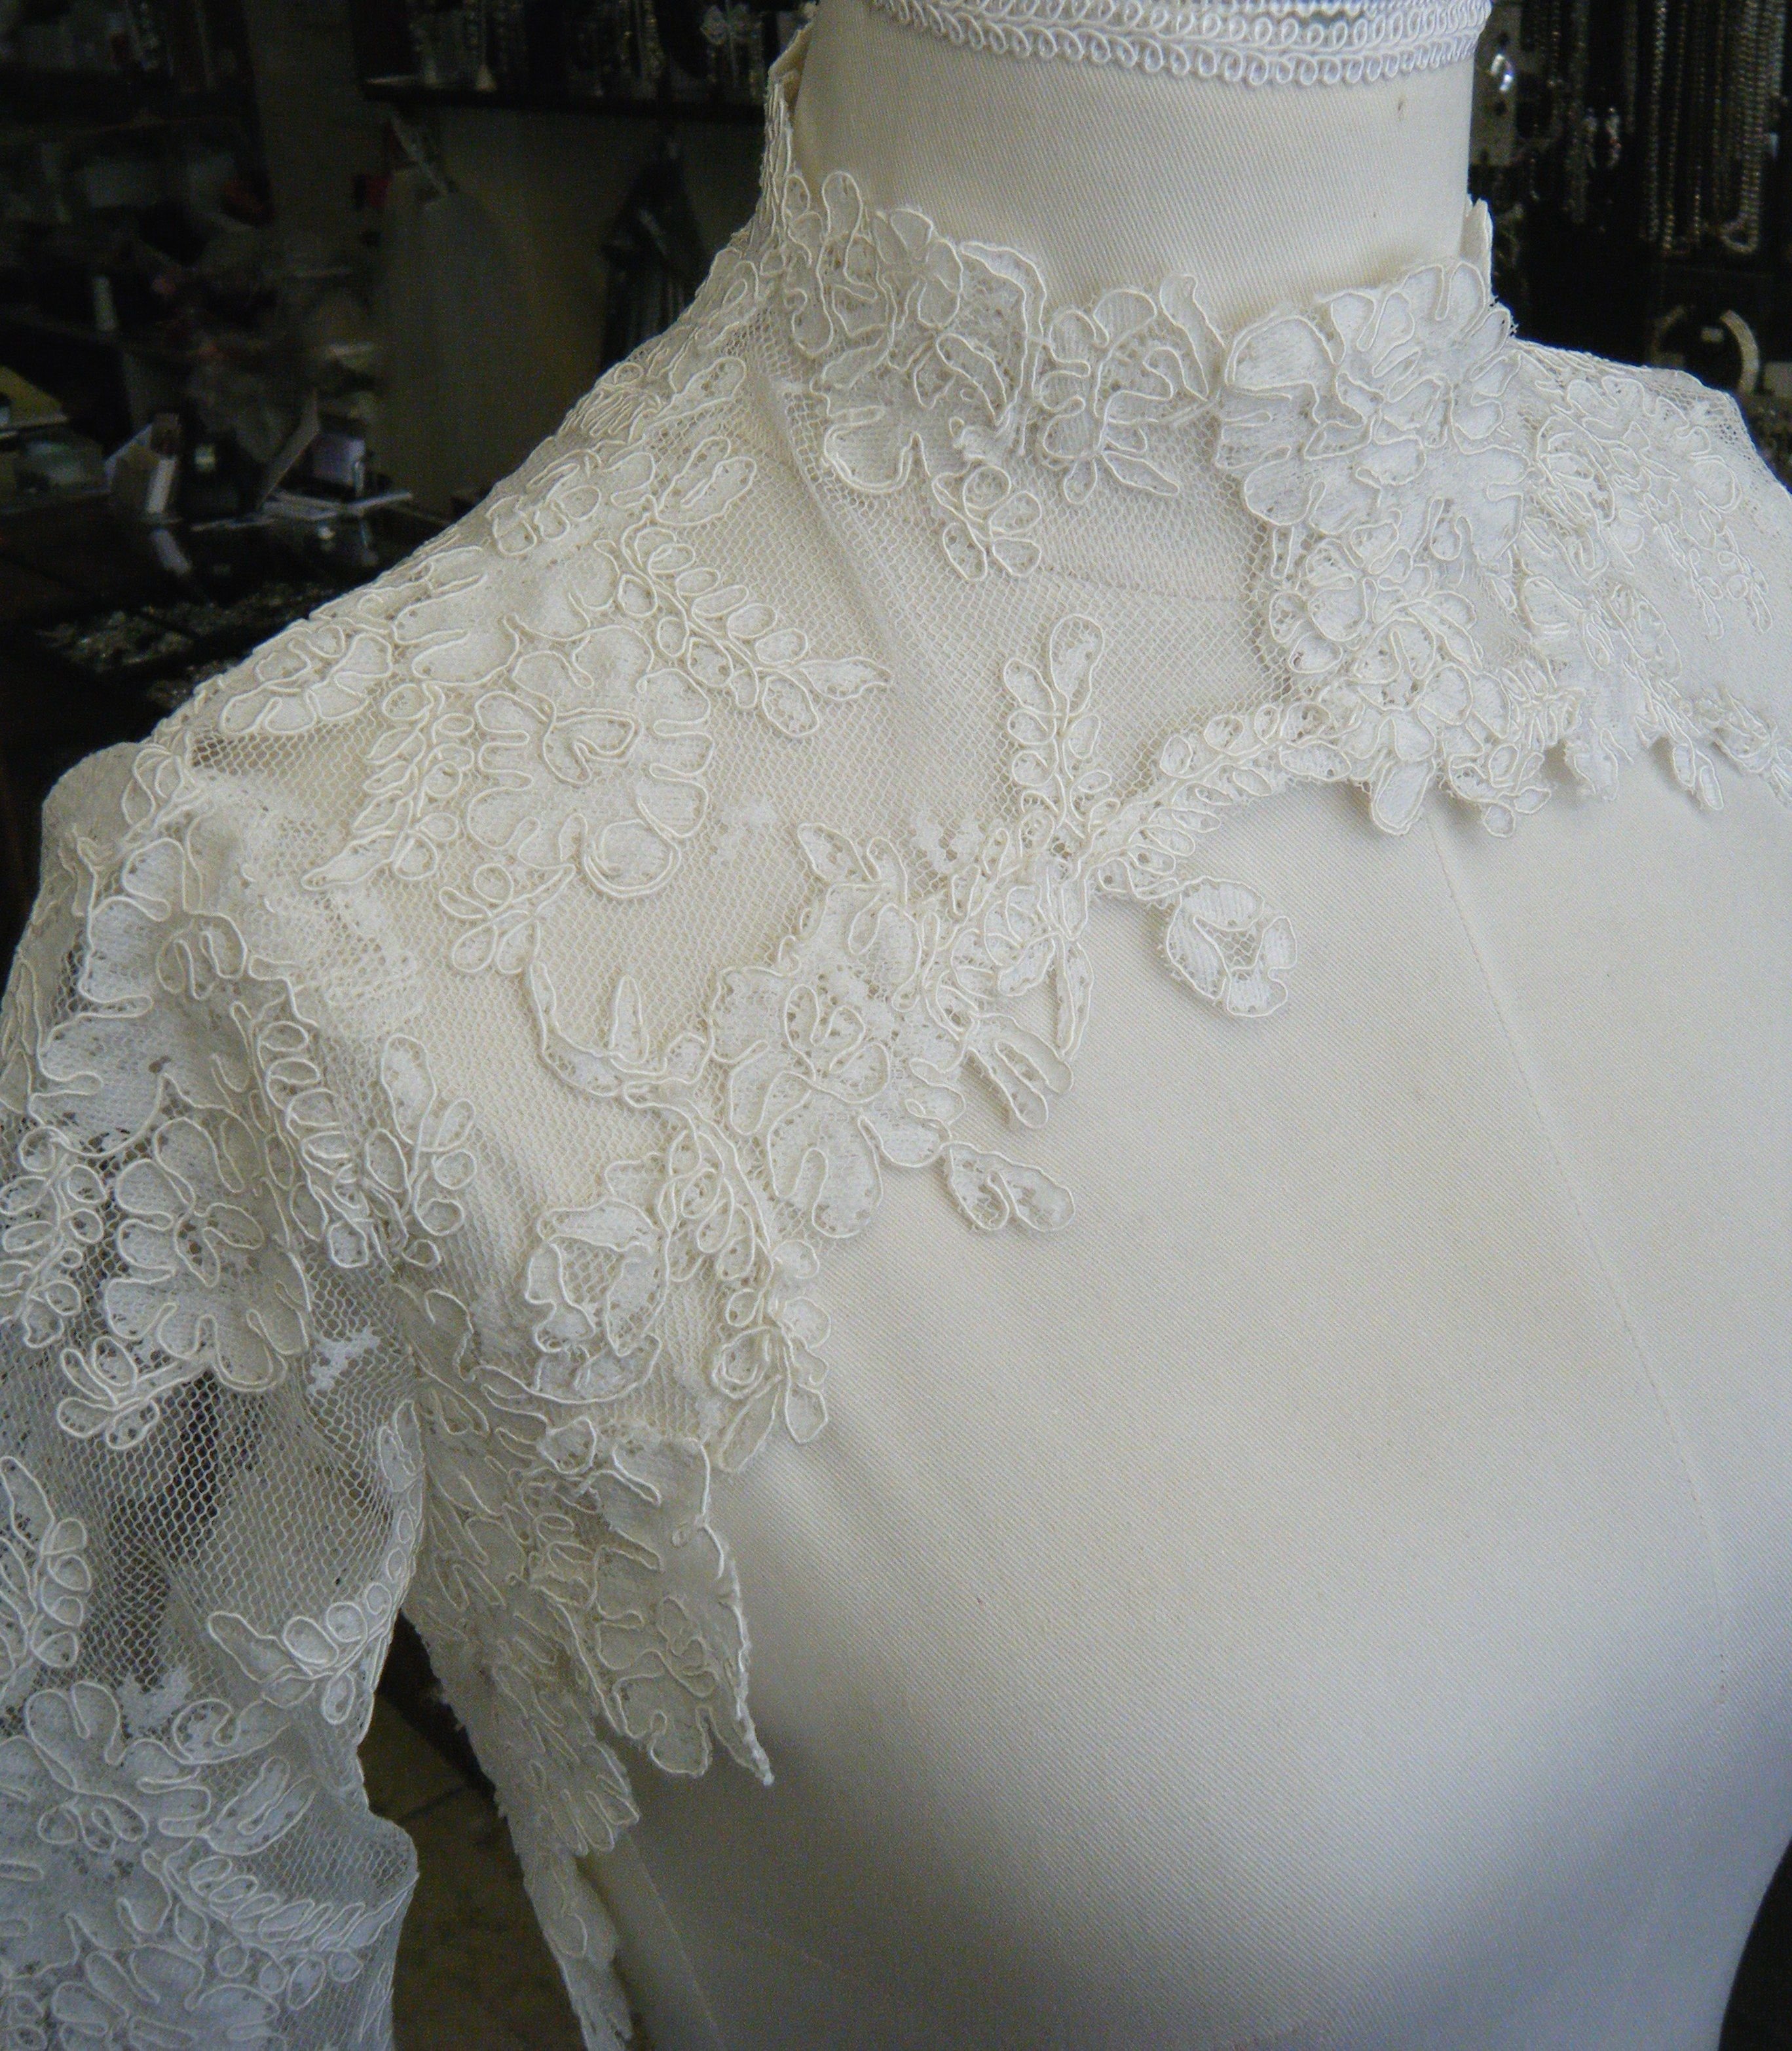 High fashion couture corded lace bolero ,,, WOW !!! find this at my Etsy shop:  IcoutureIcouture